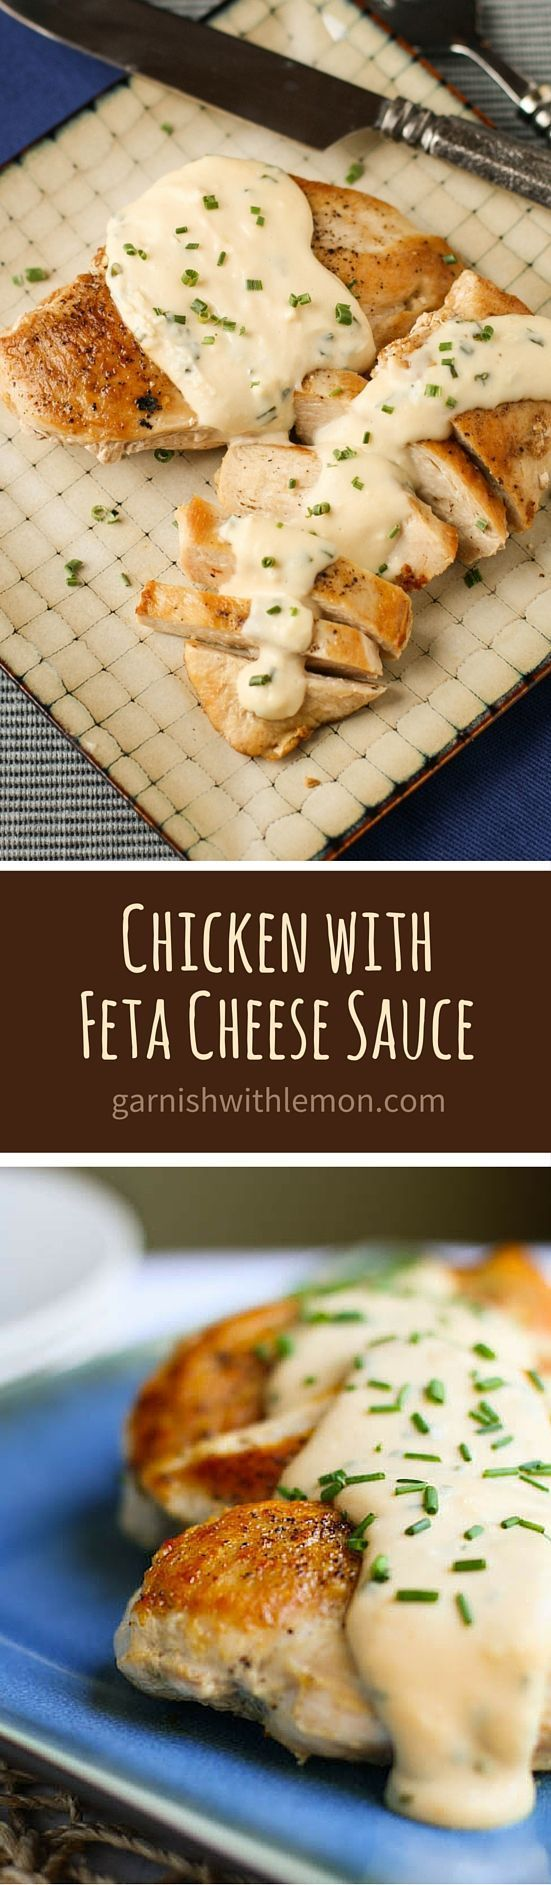 Chicken with Feta Cheese Sauce